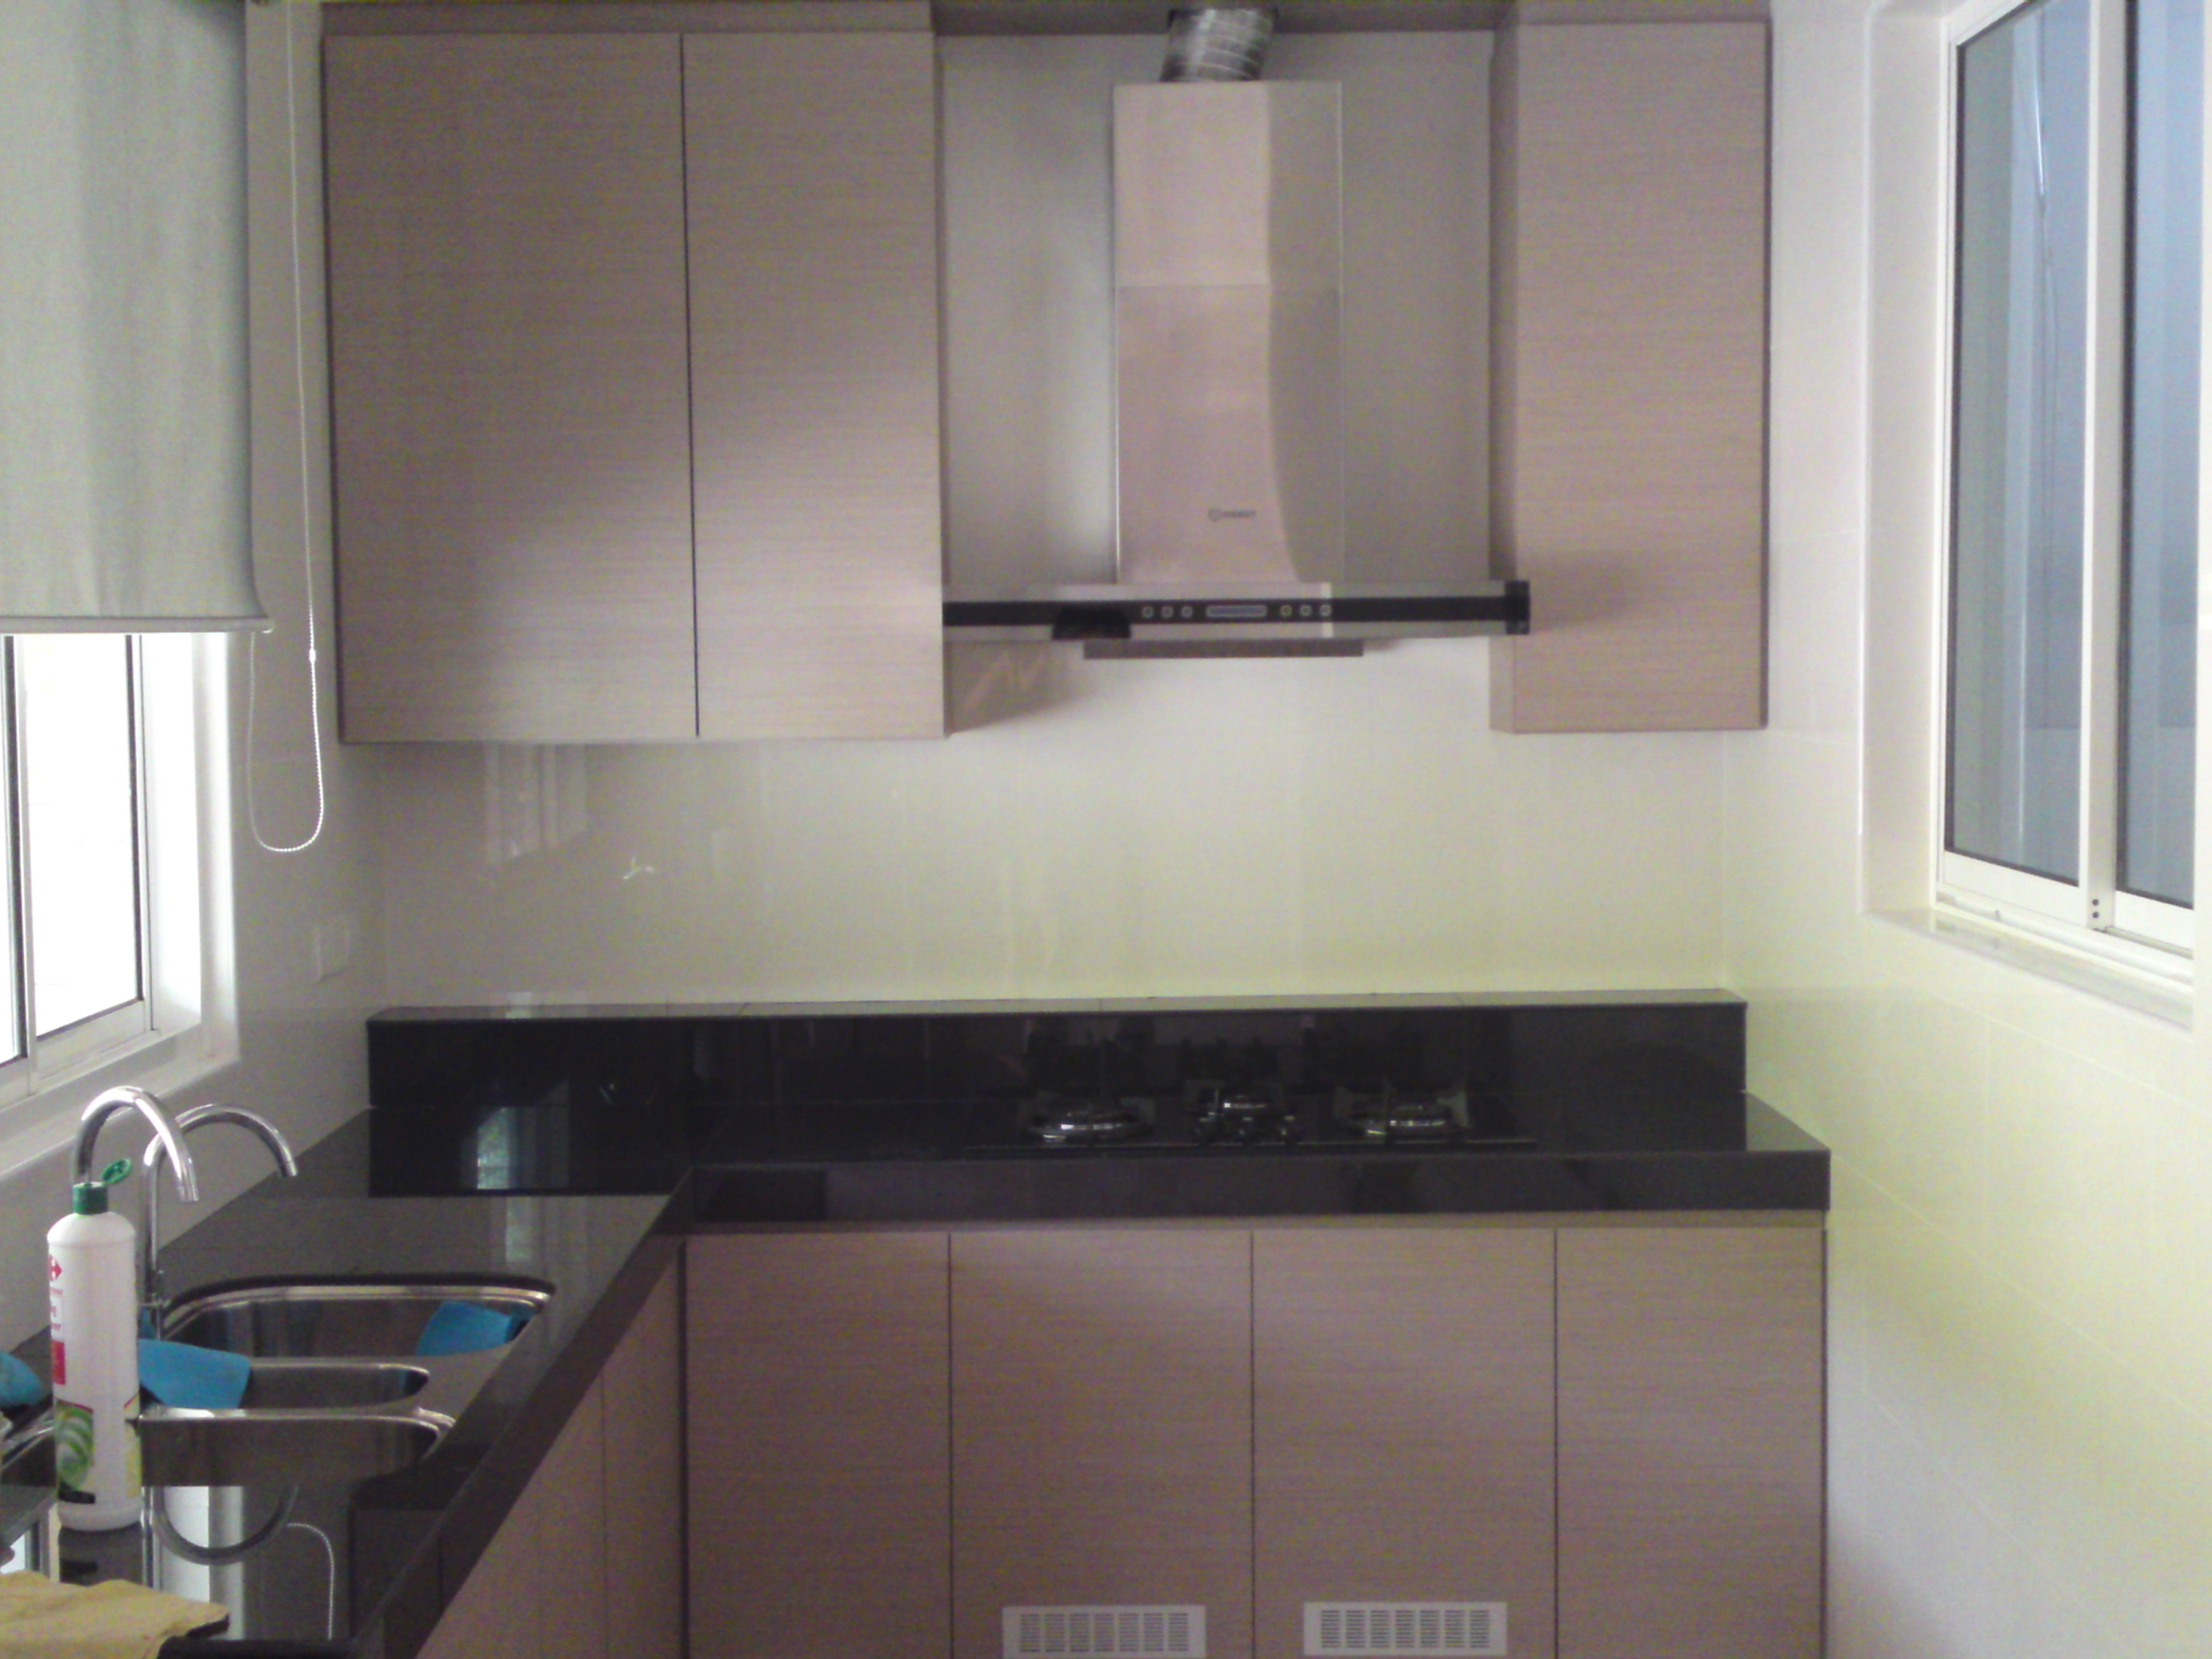 Kitchen cabinets laminated with formica - Kitchen design with no top cabinets ...